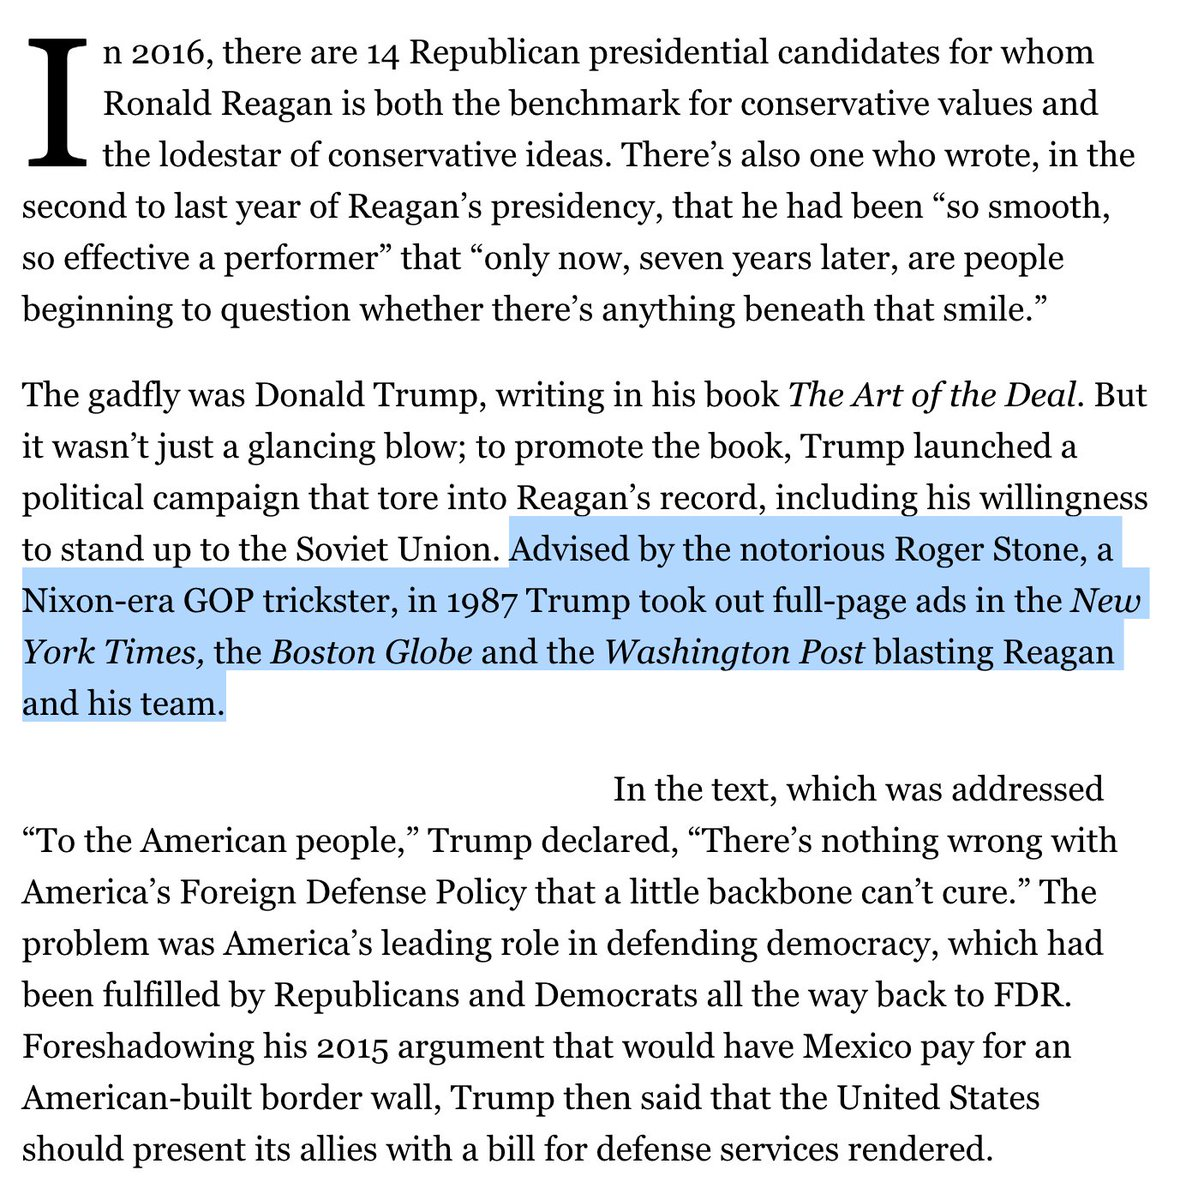 Rogers Stone and Donald Trump's Russia affinity dates back to the late 1980s, when there was still a U.S.S.R: https://t.co/GG1GrdfO1w